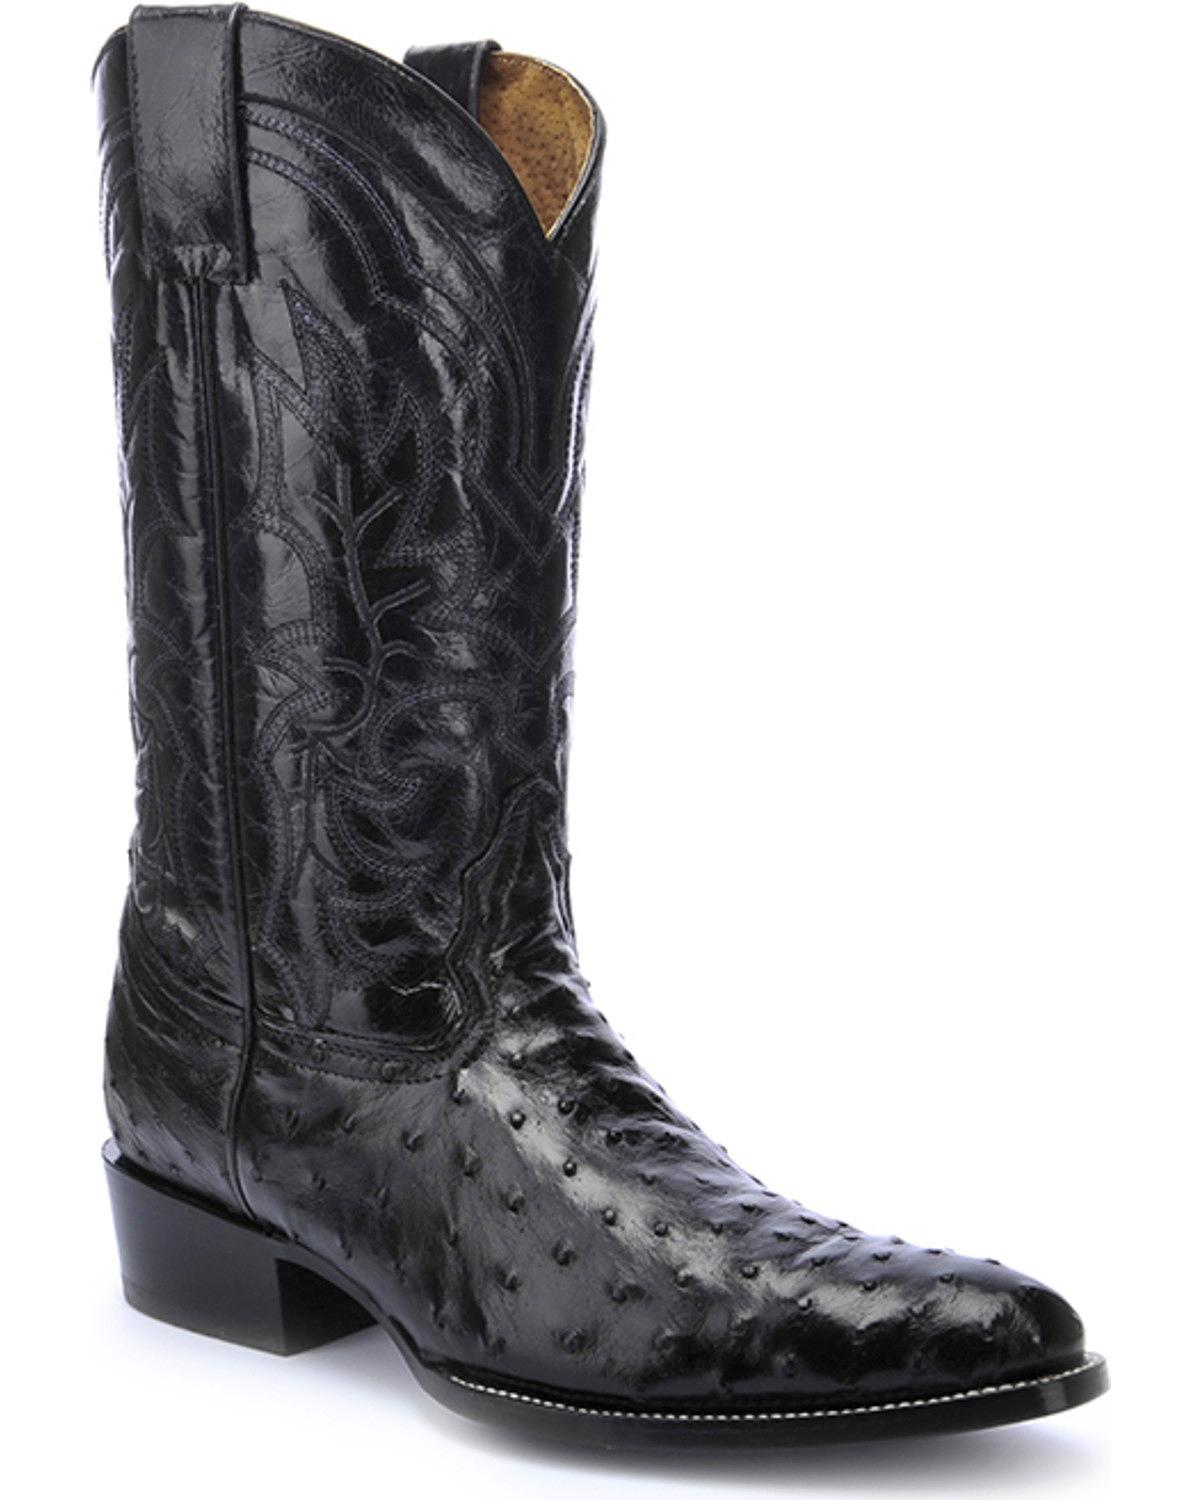 Men's Full Quill Ostrich Cowboy Boot Round Toe - L5206